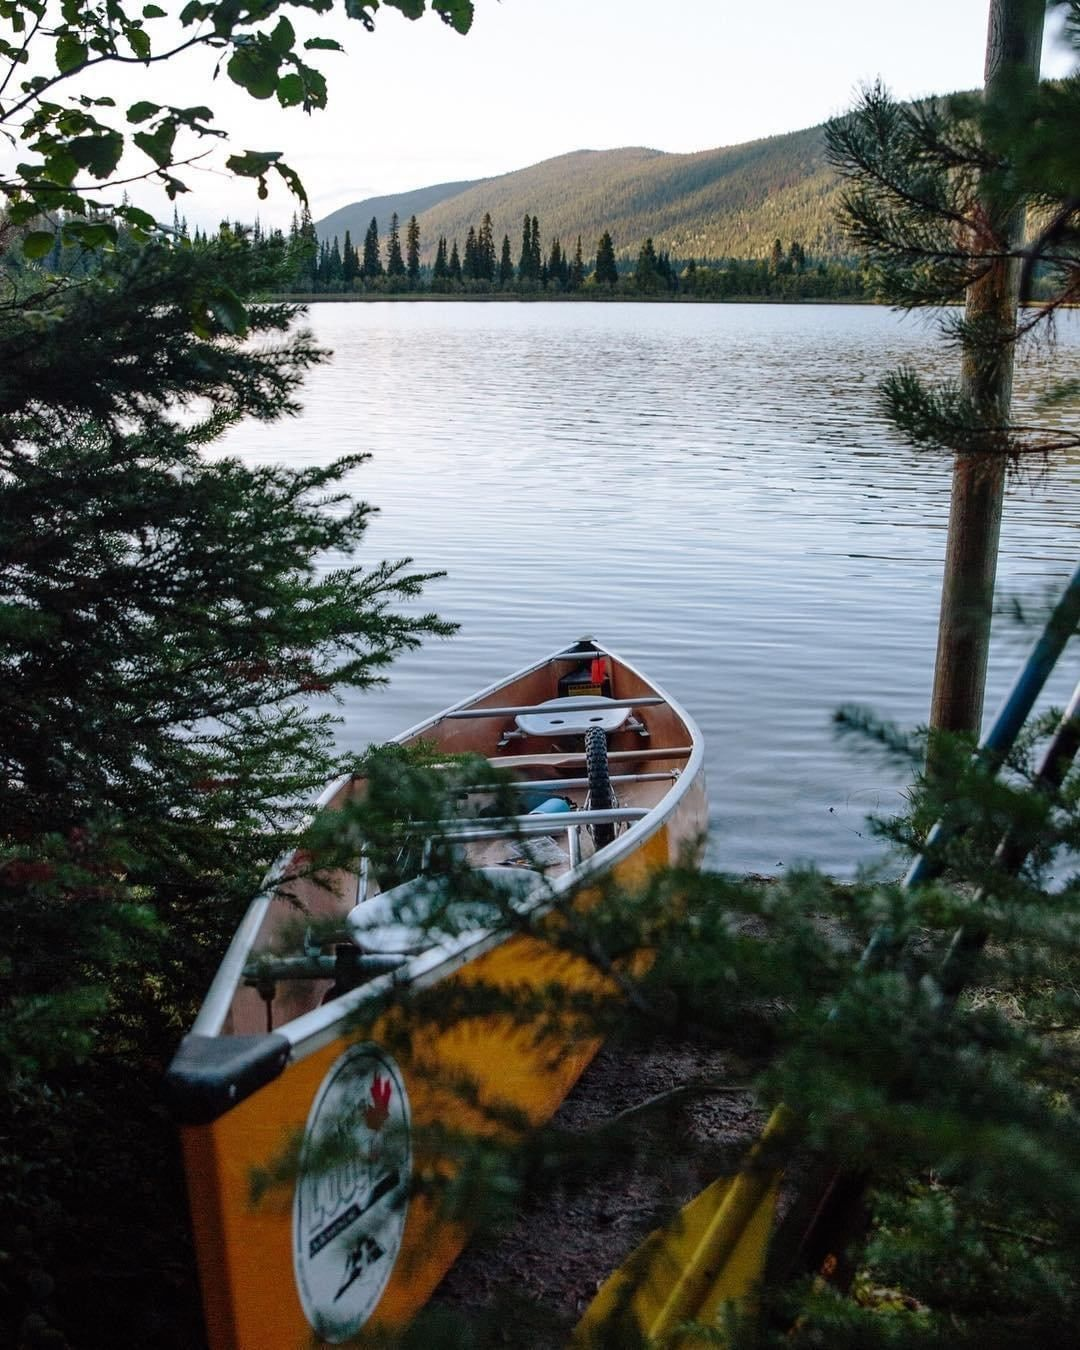 Destination British Columbia On Instagram Paddle Through The Bowron Lakes Canoe Circuit A 116km 72mi Route That Takes You In 2020 Waterway British Columbia Canoe